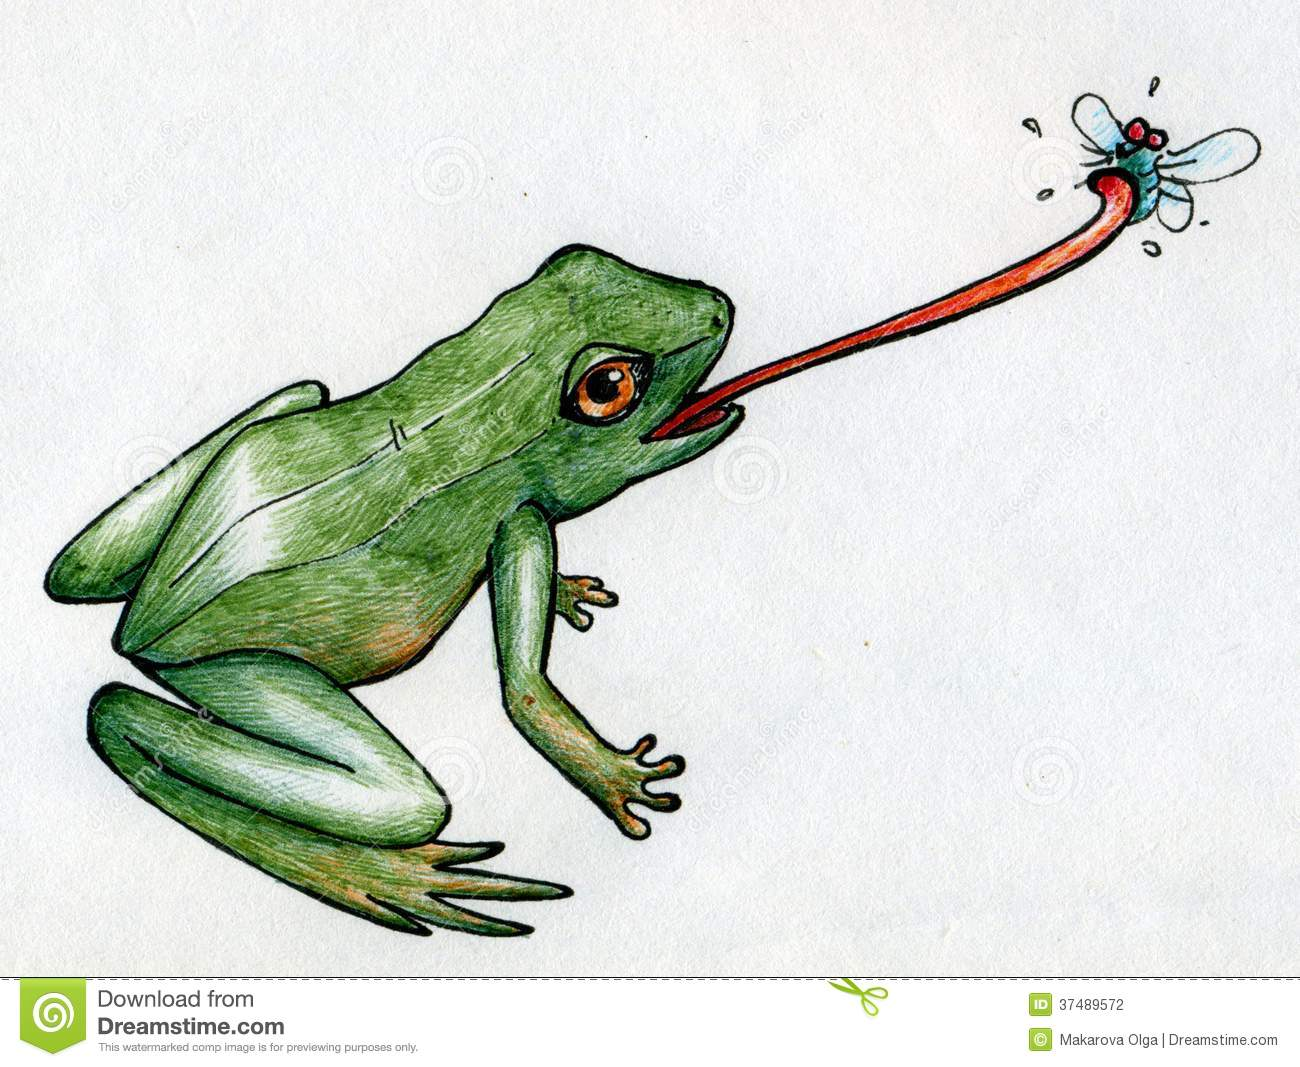 Frog hunting flies stock illustration. Illustration of ...